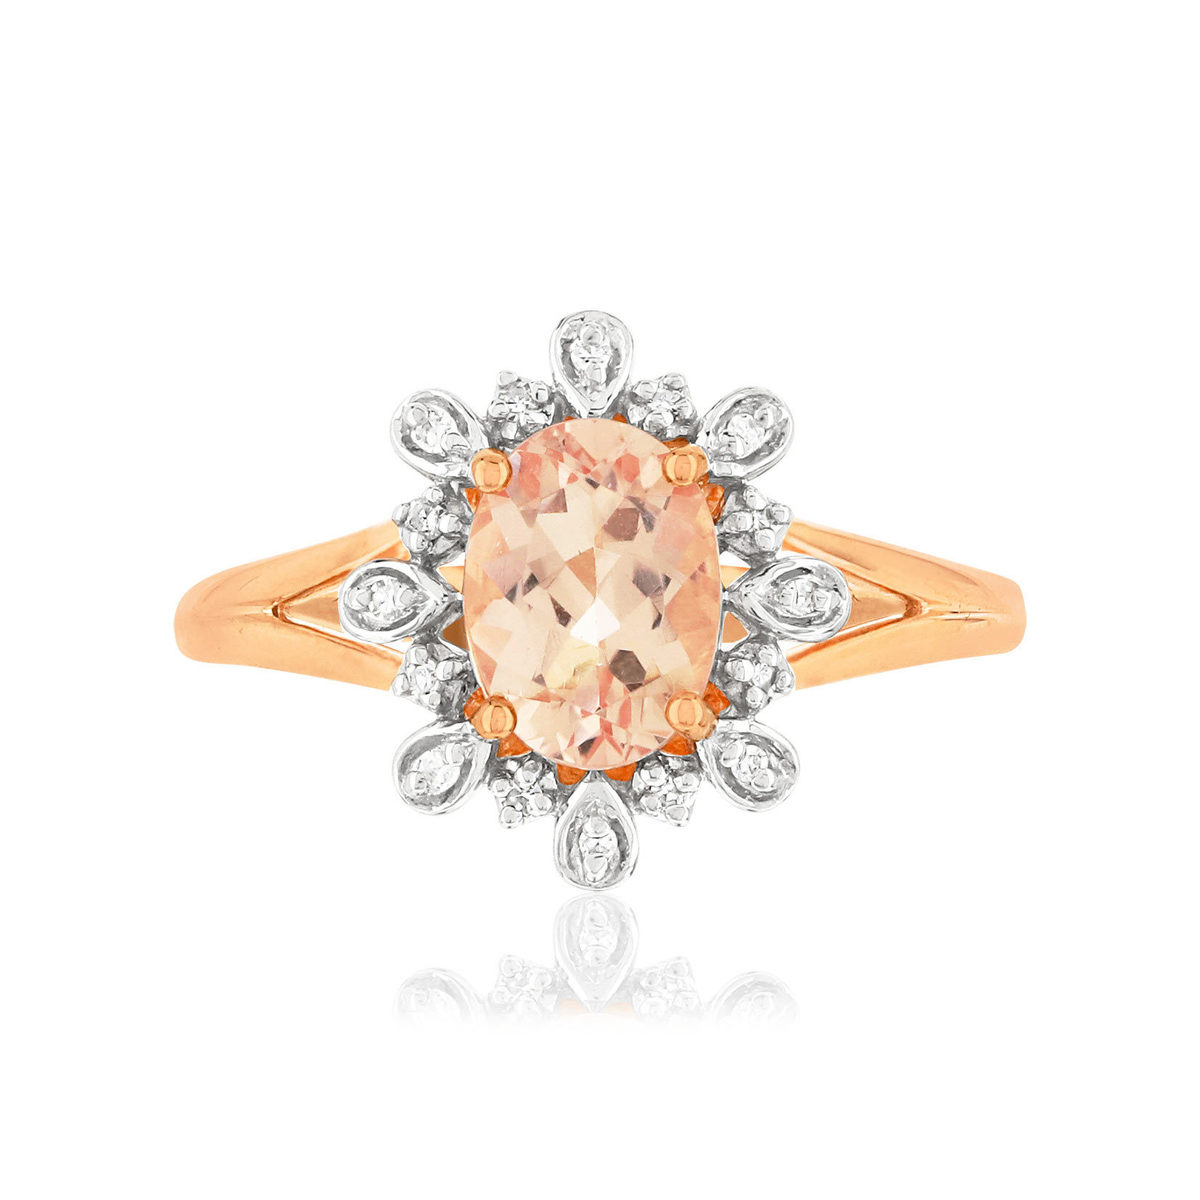 Bague MATY Or 375 2 tons Diamants et Morganite - vue V3